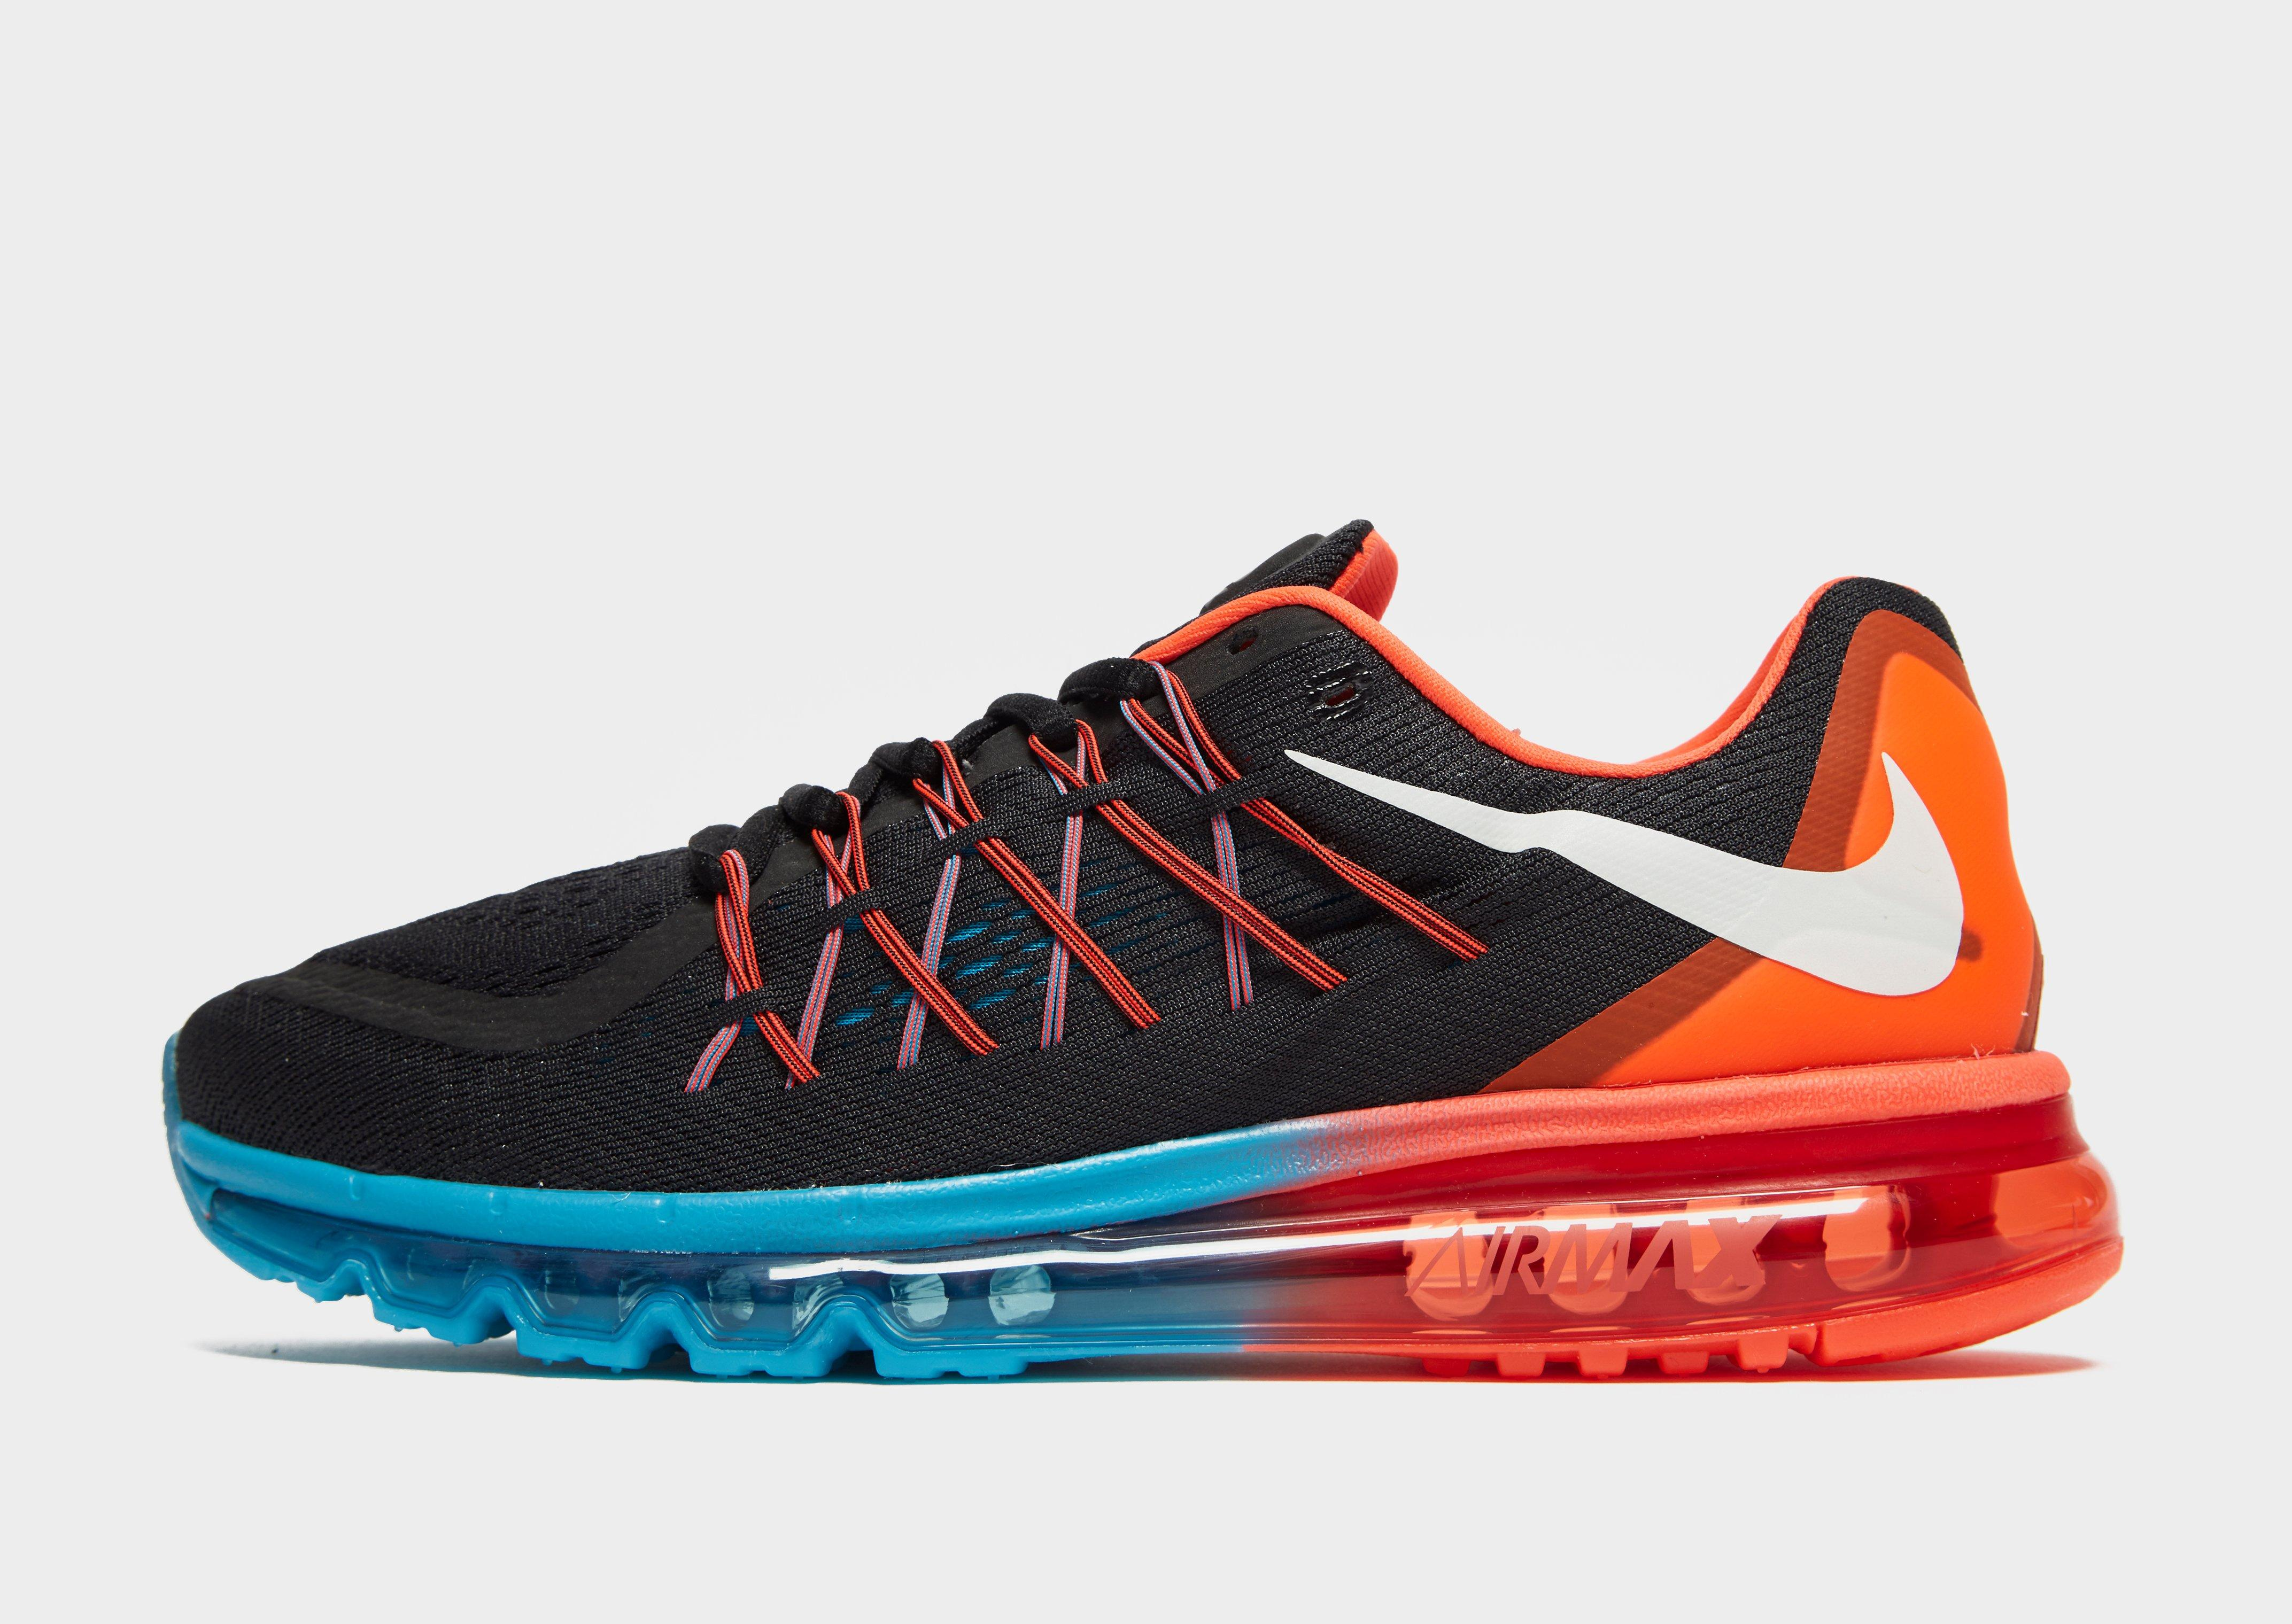 Air Max Running Nike Air Max 2015 Jd Sports